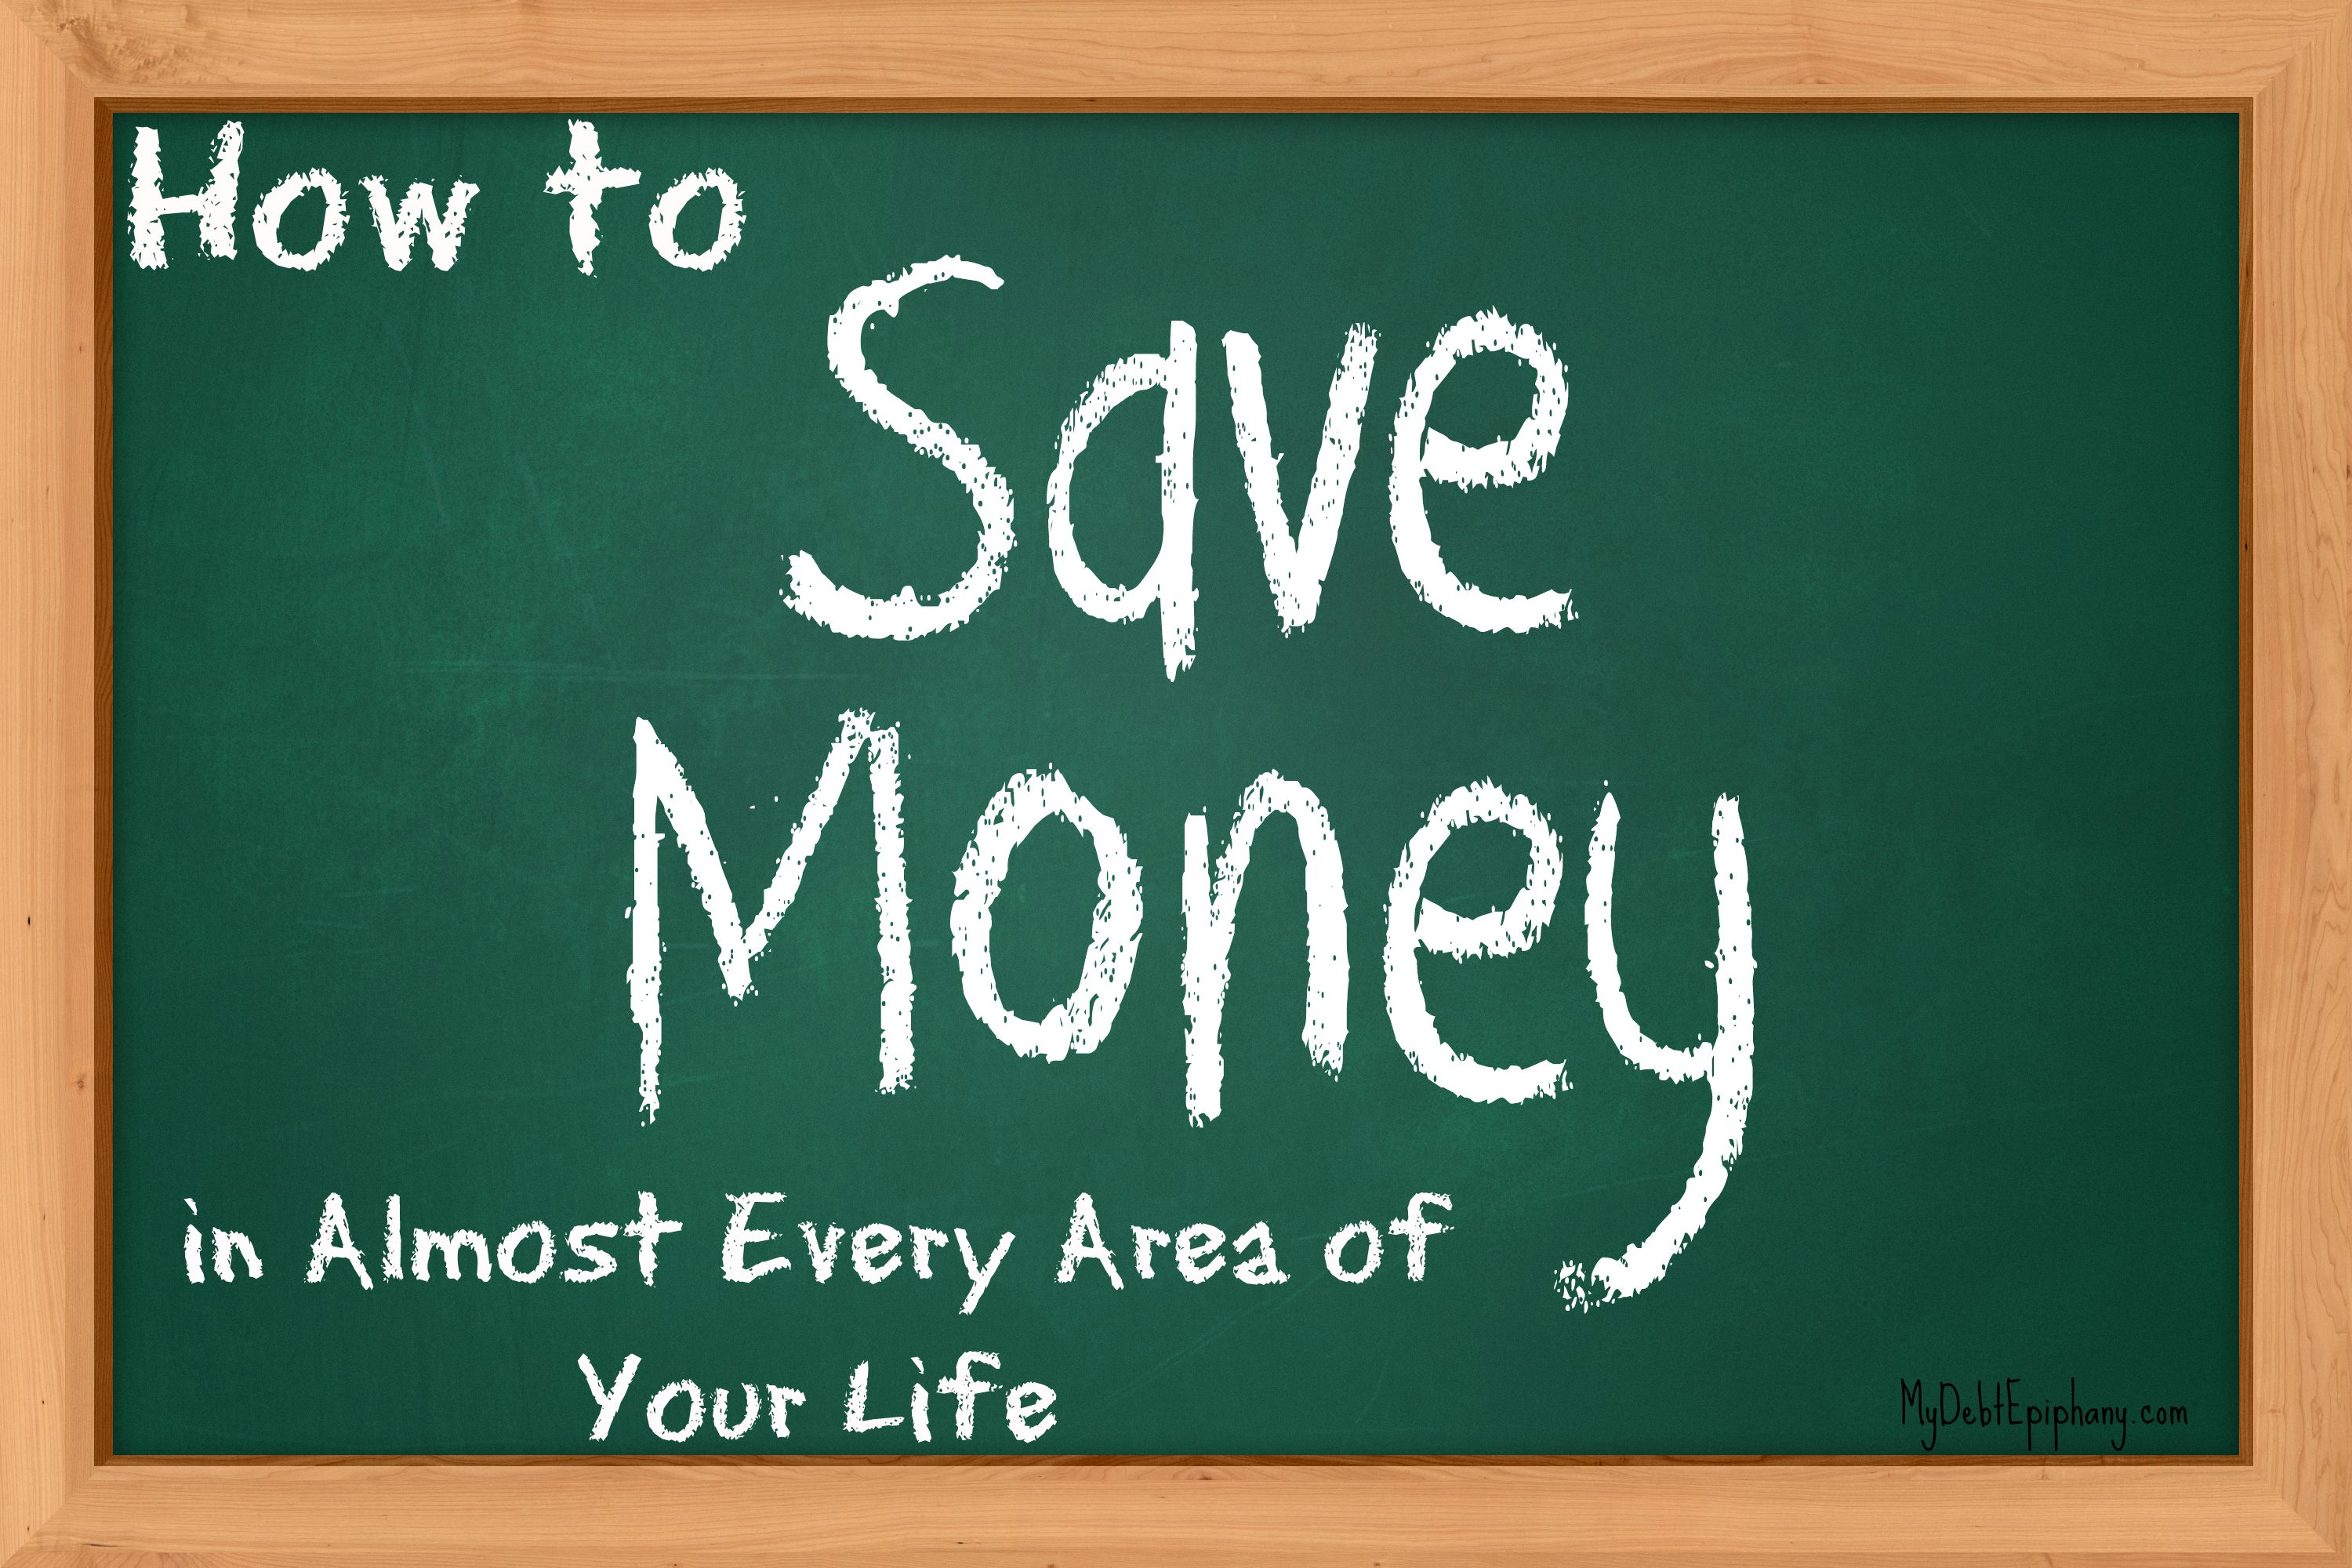 How to Save Money in Almost Every Area of Your Life